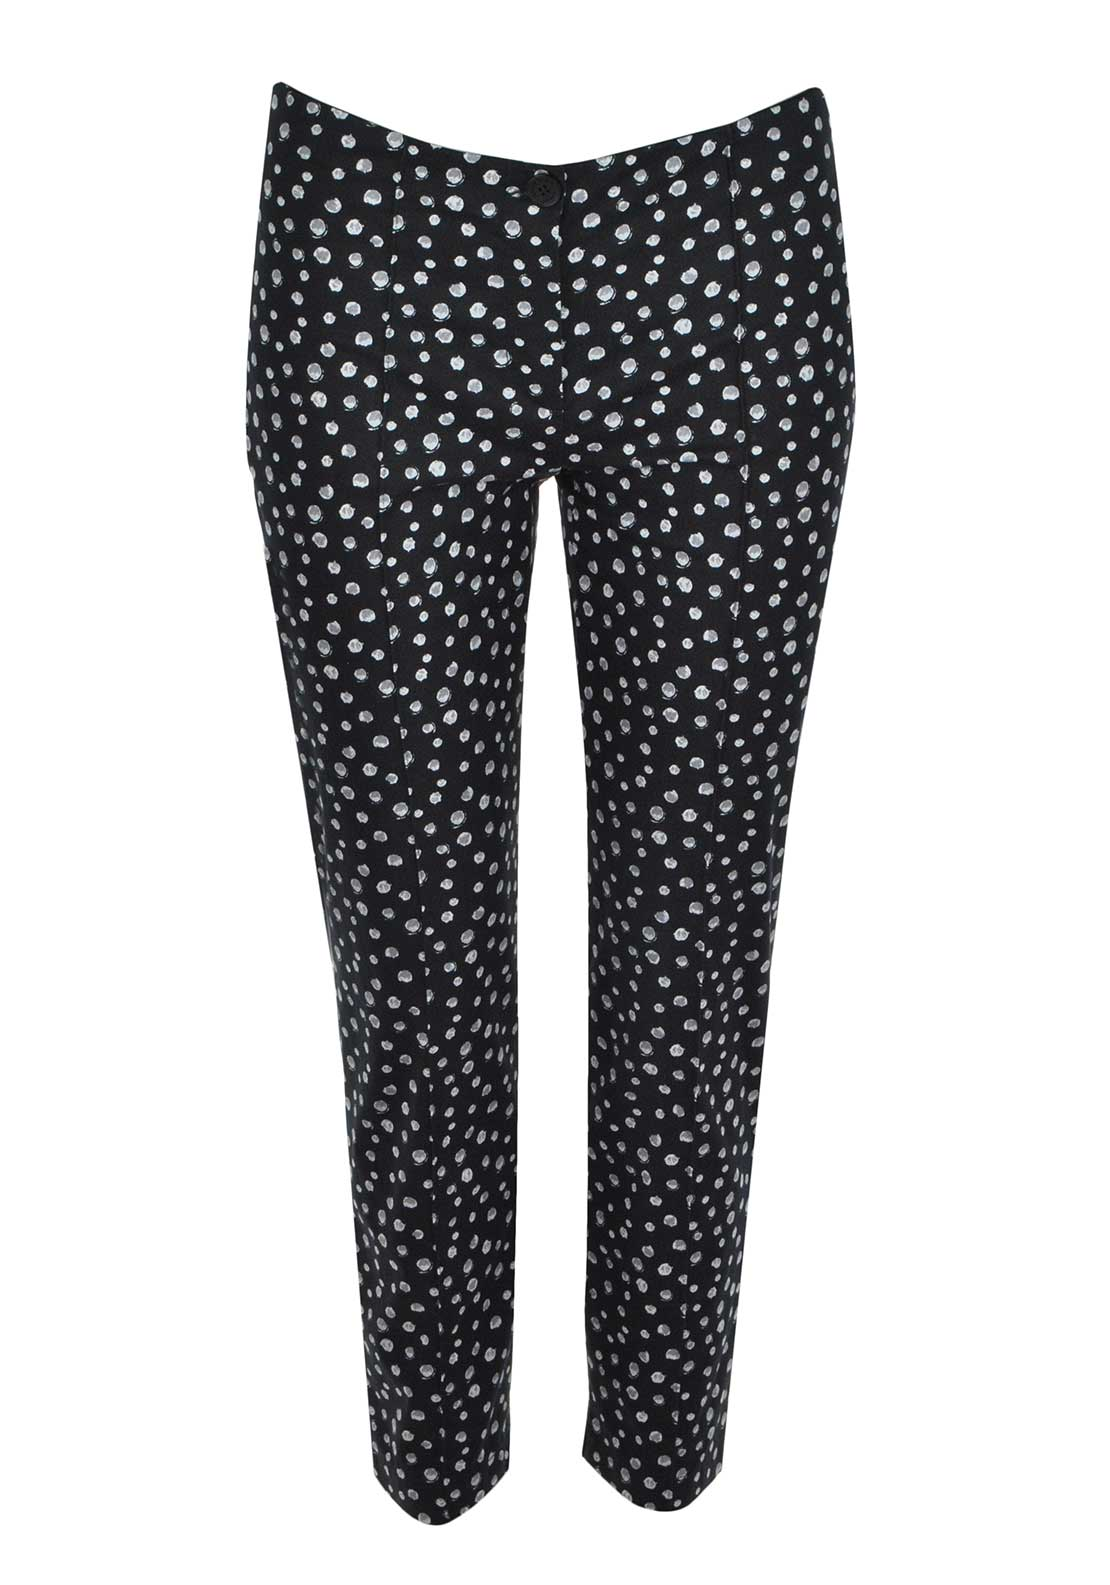 Gerry Weber Circle Printed Cropped Trousers, Black